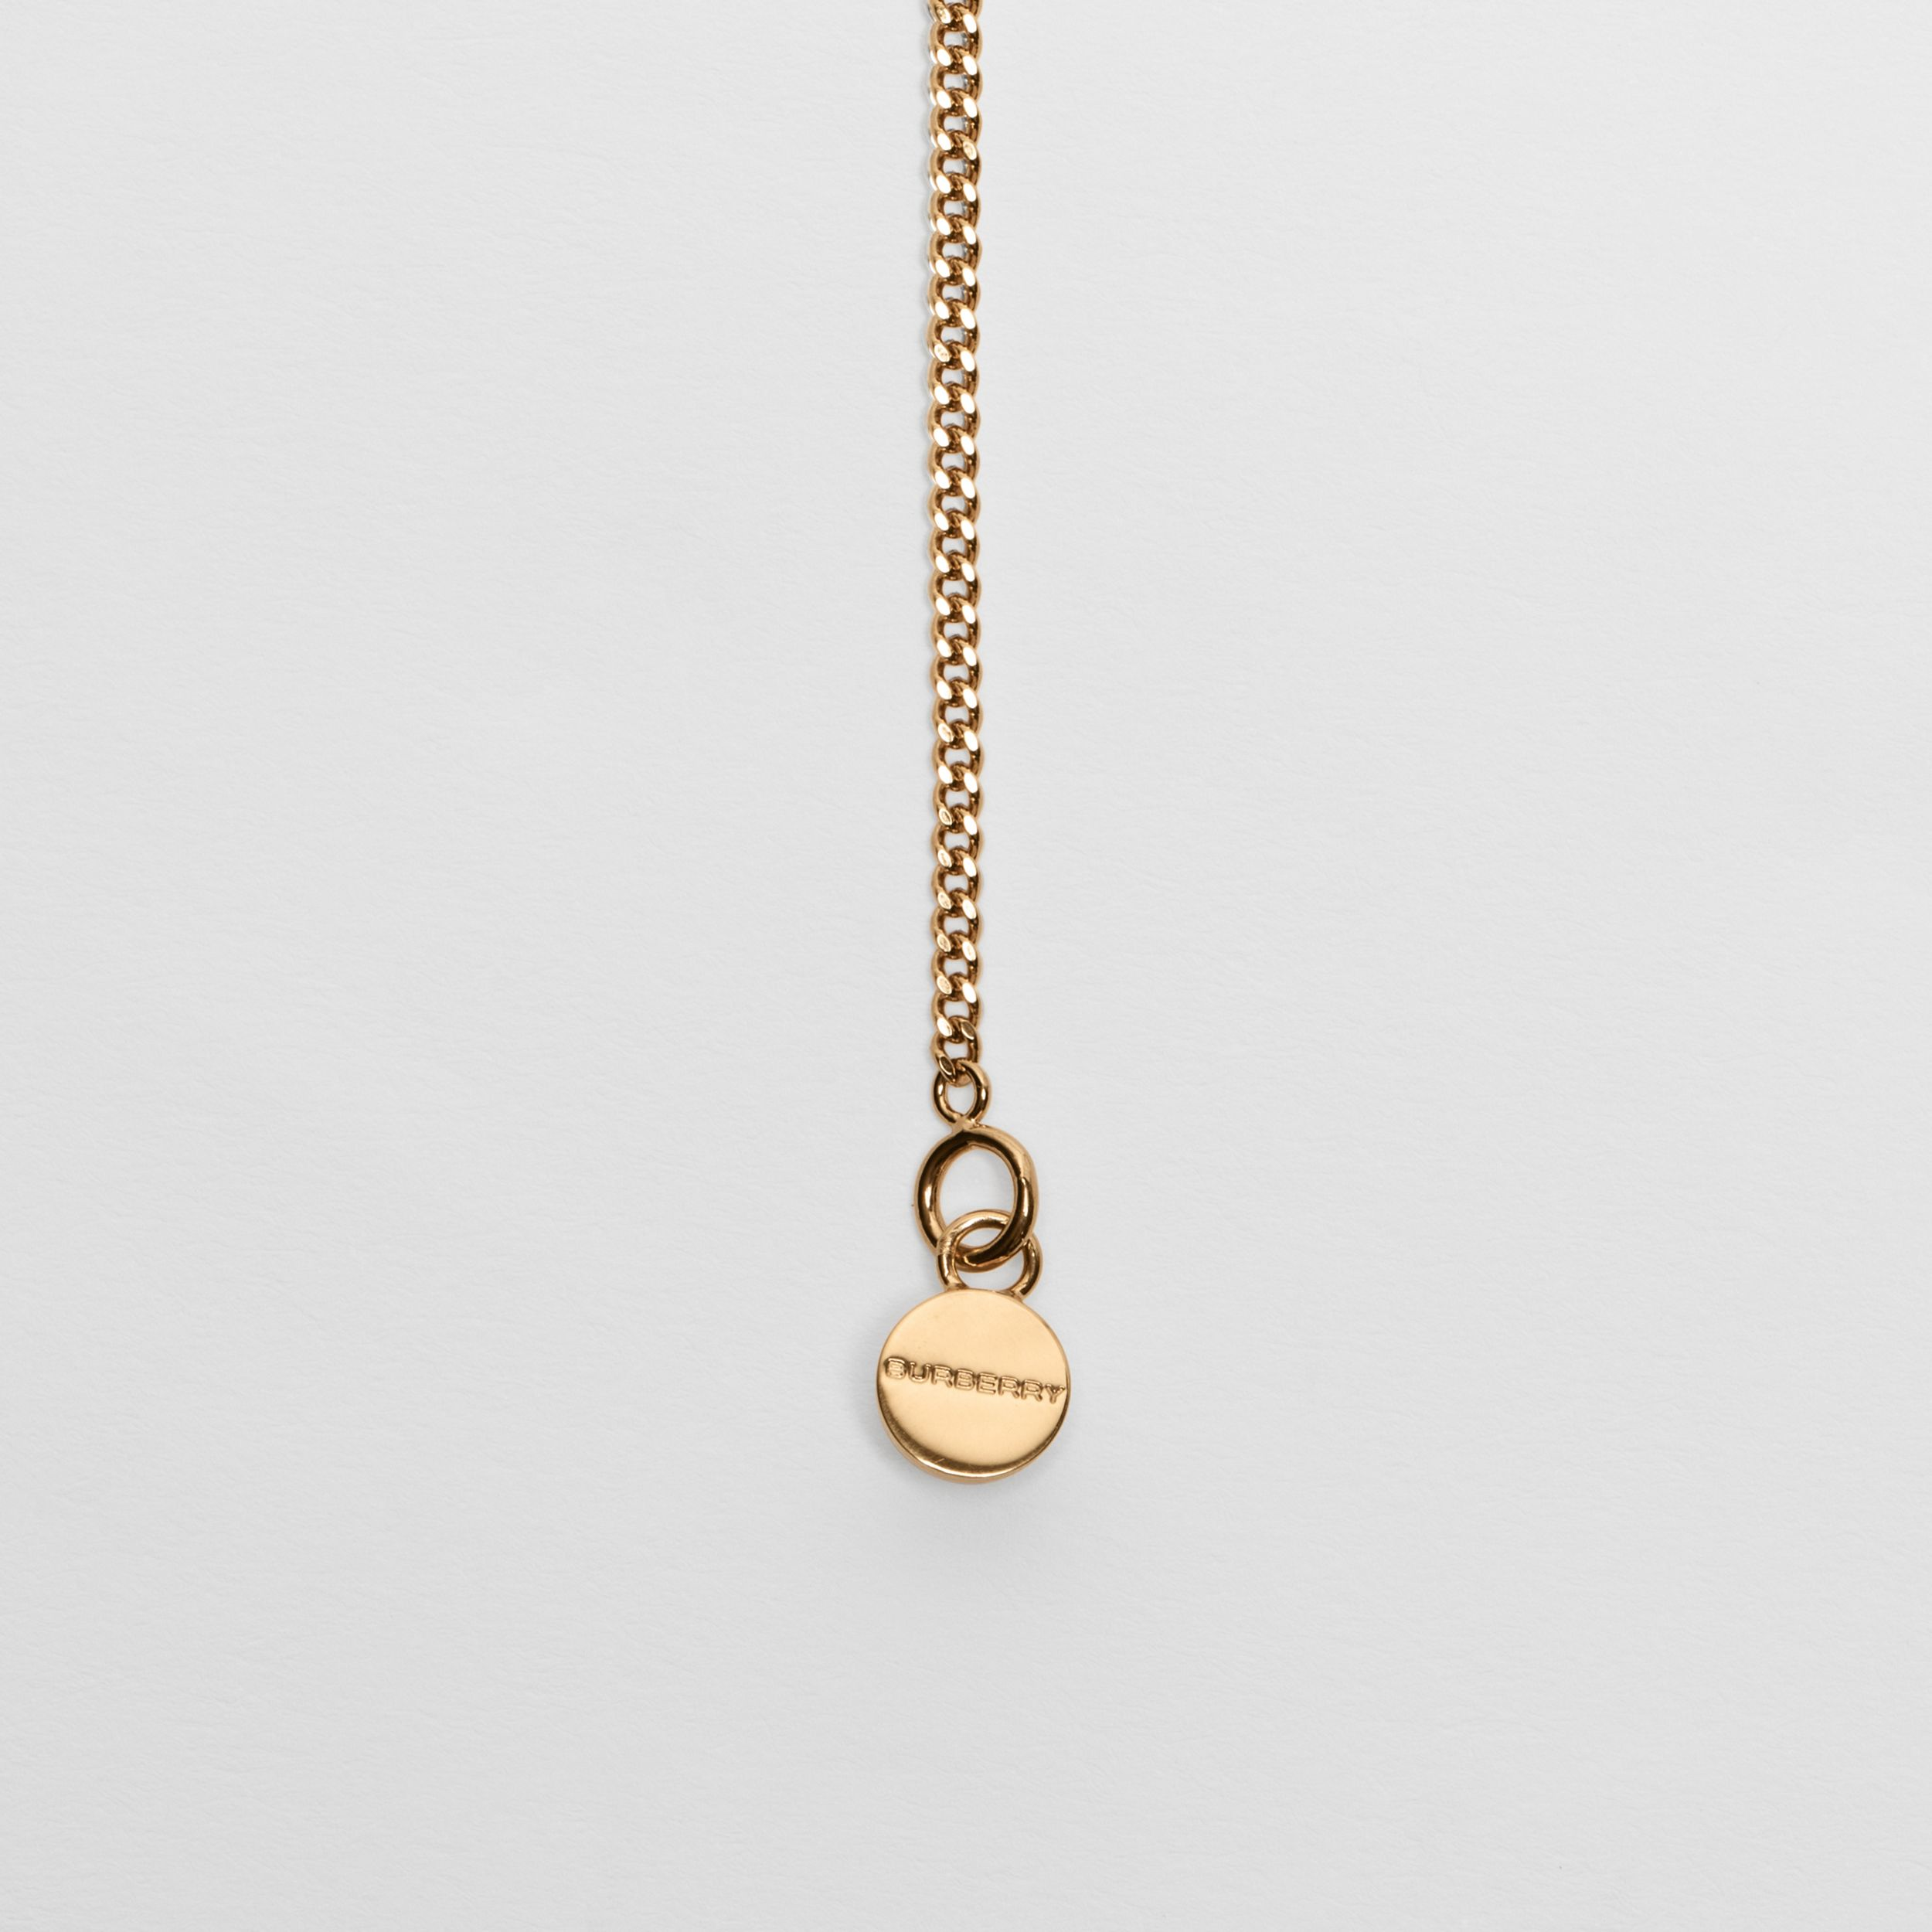 Gold-plated Chain Necklace in Light - Women | Burberry - 2